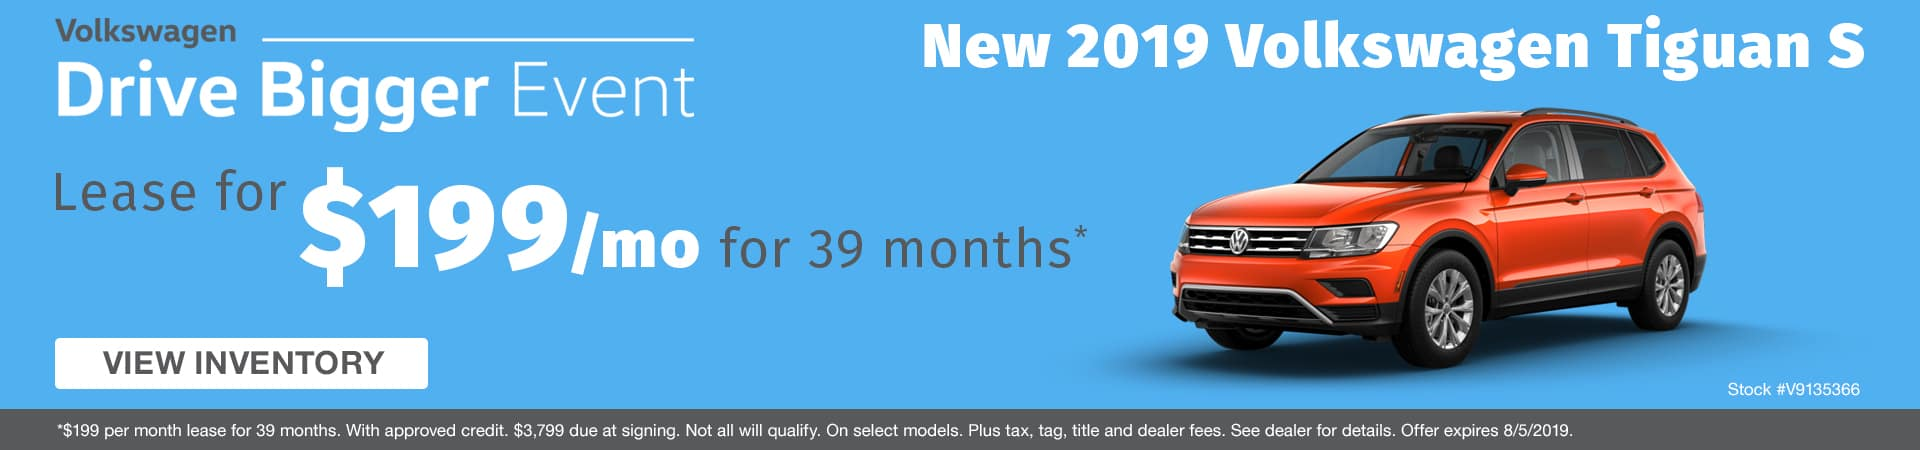 Lease a new 2019 Volkswagen Tiguan for $199 a month in Murfreesboro TN